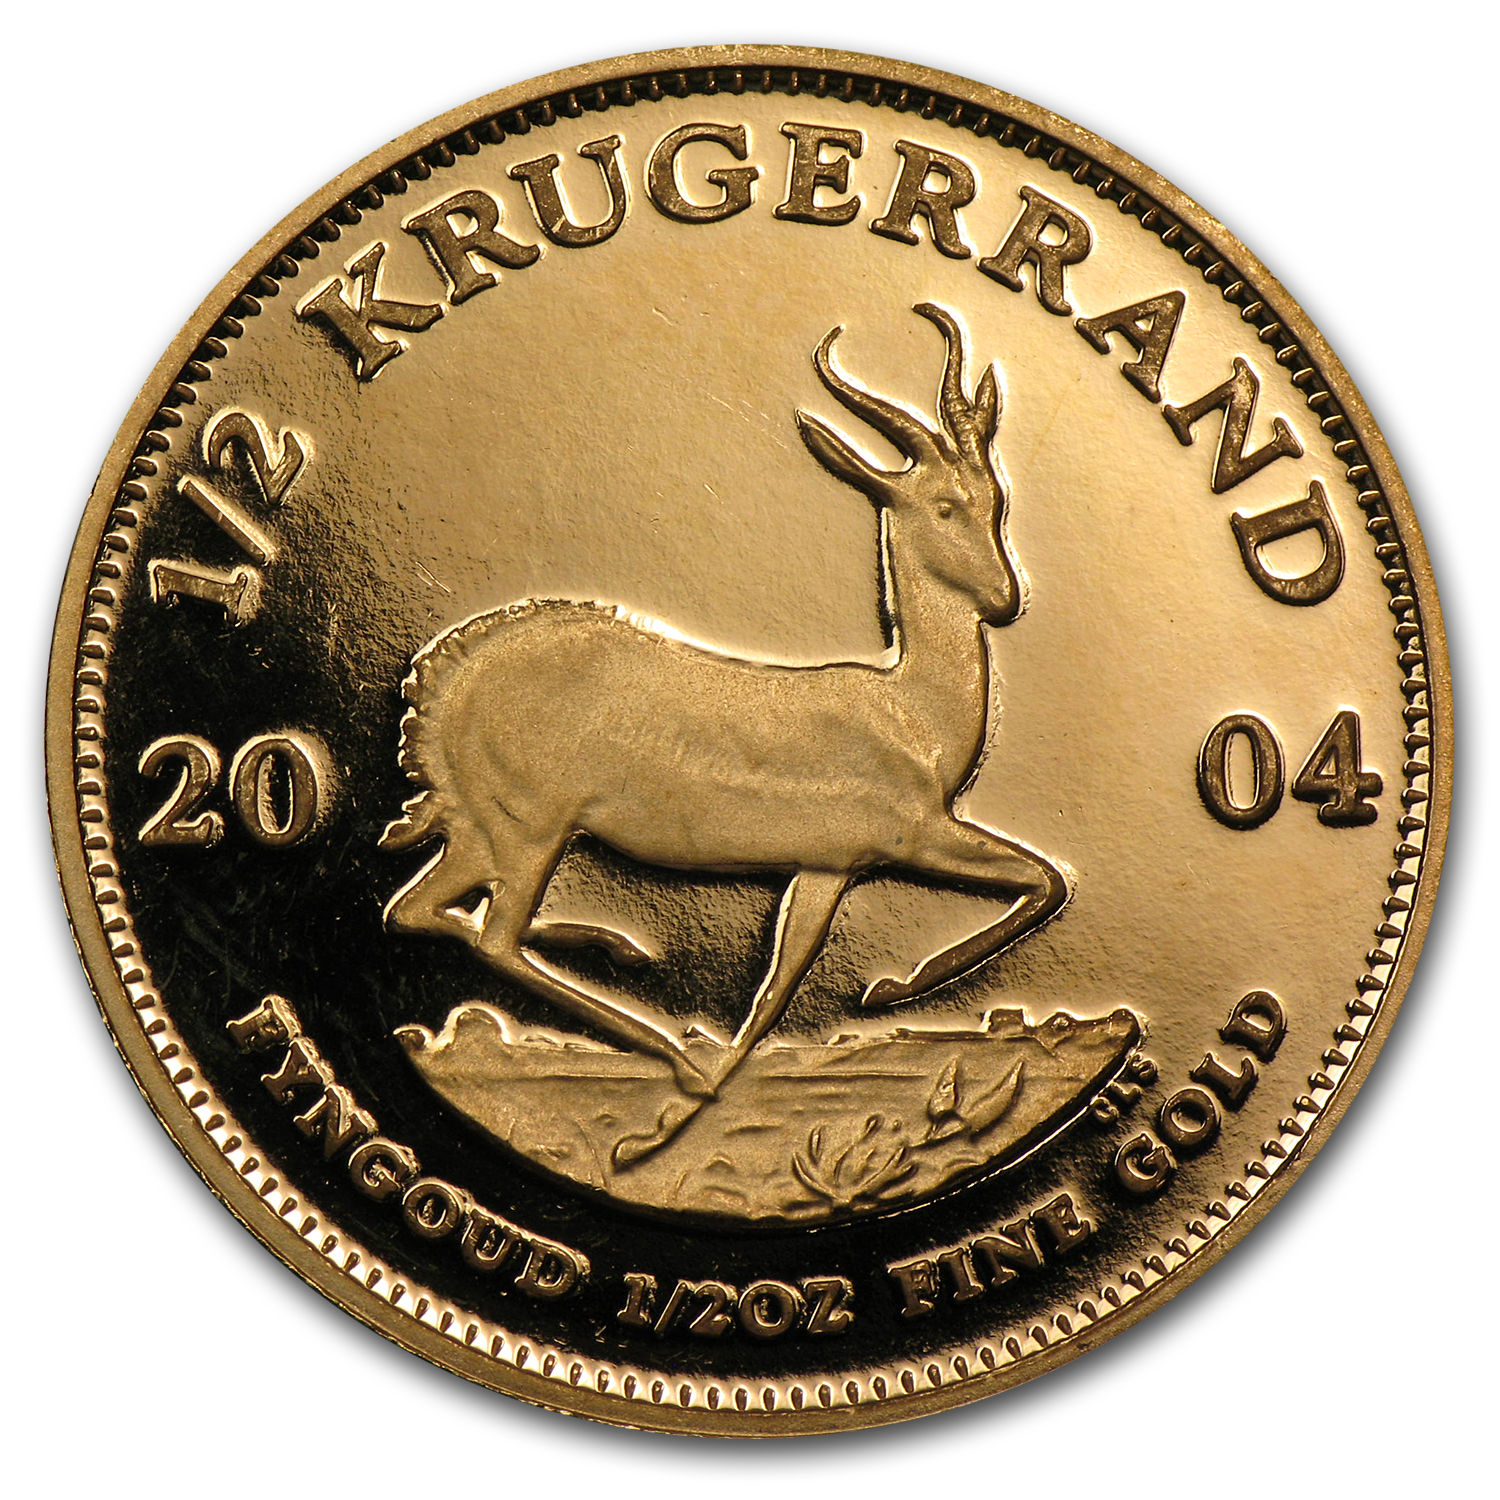 2004 1/2 oz Gold South African Krugerrand (Proof)